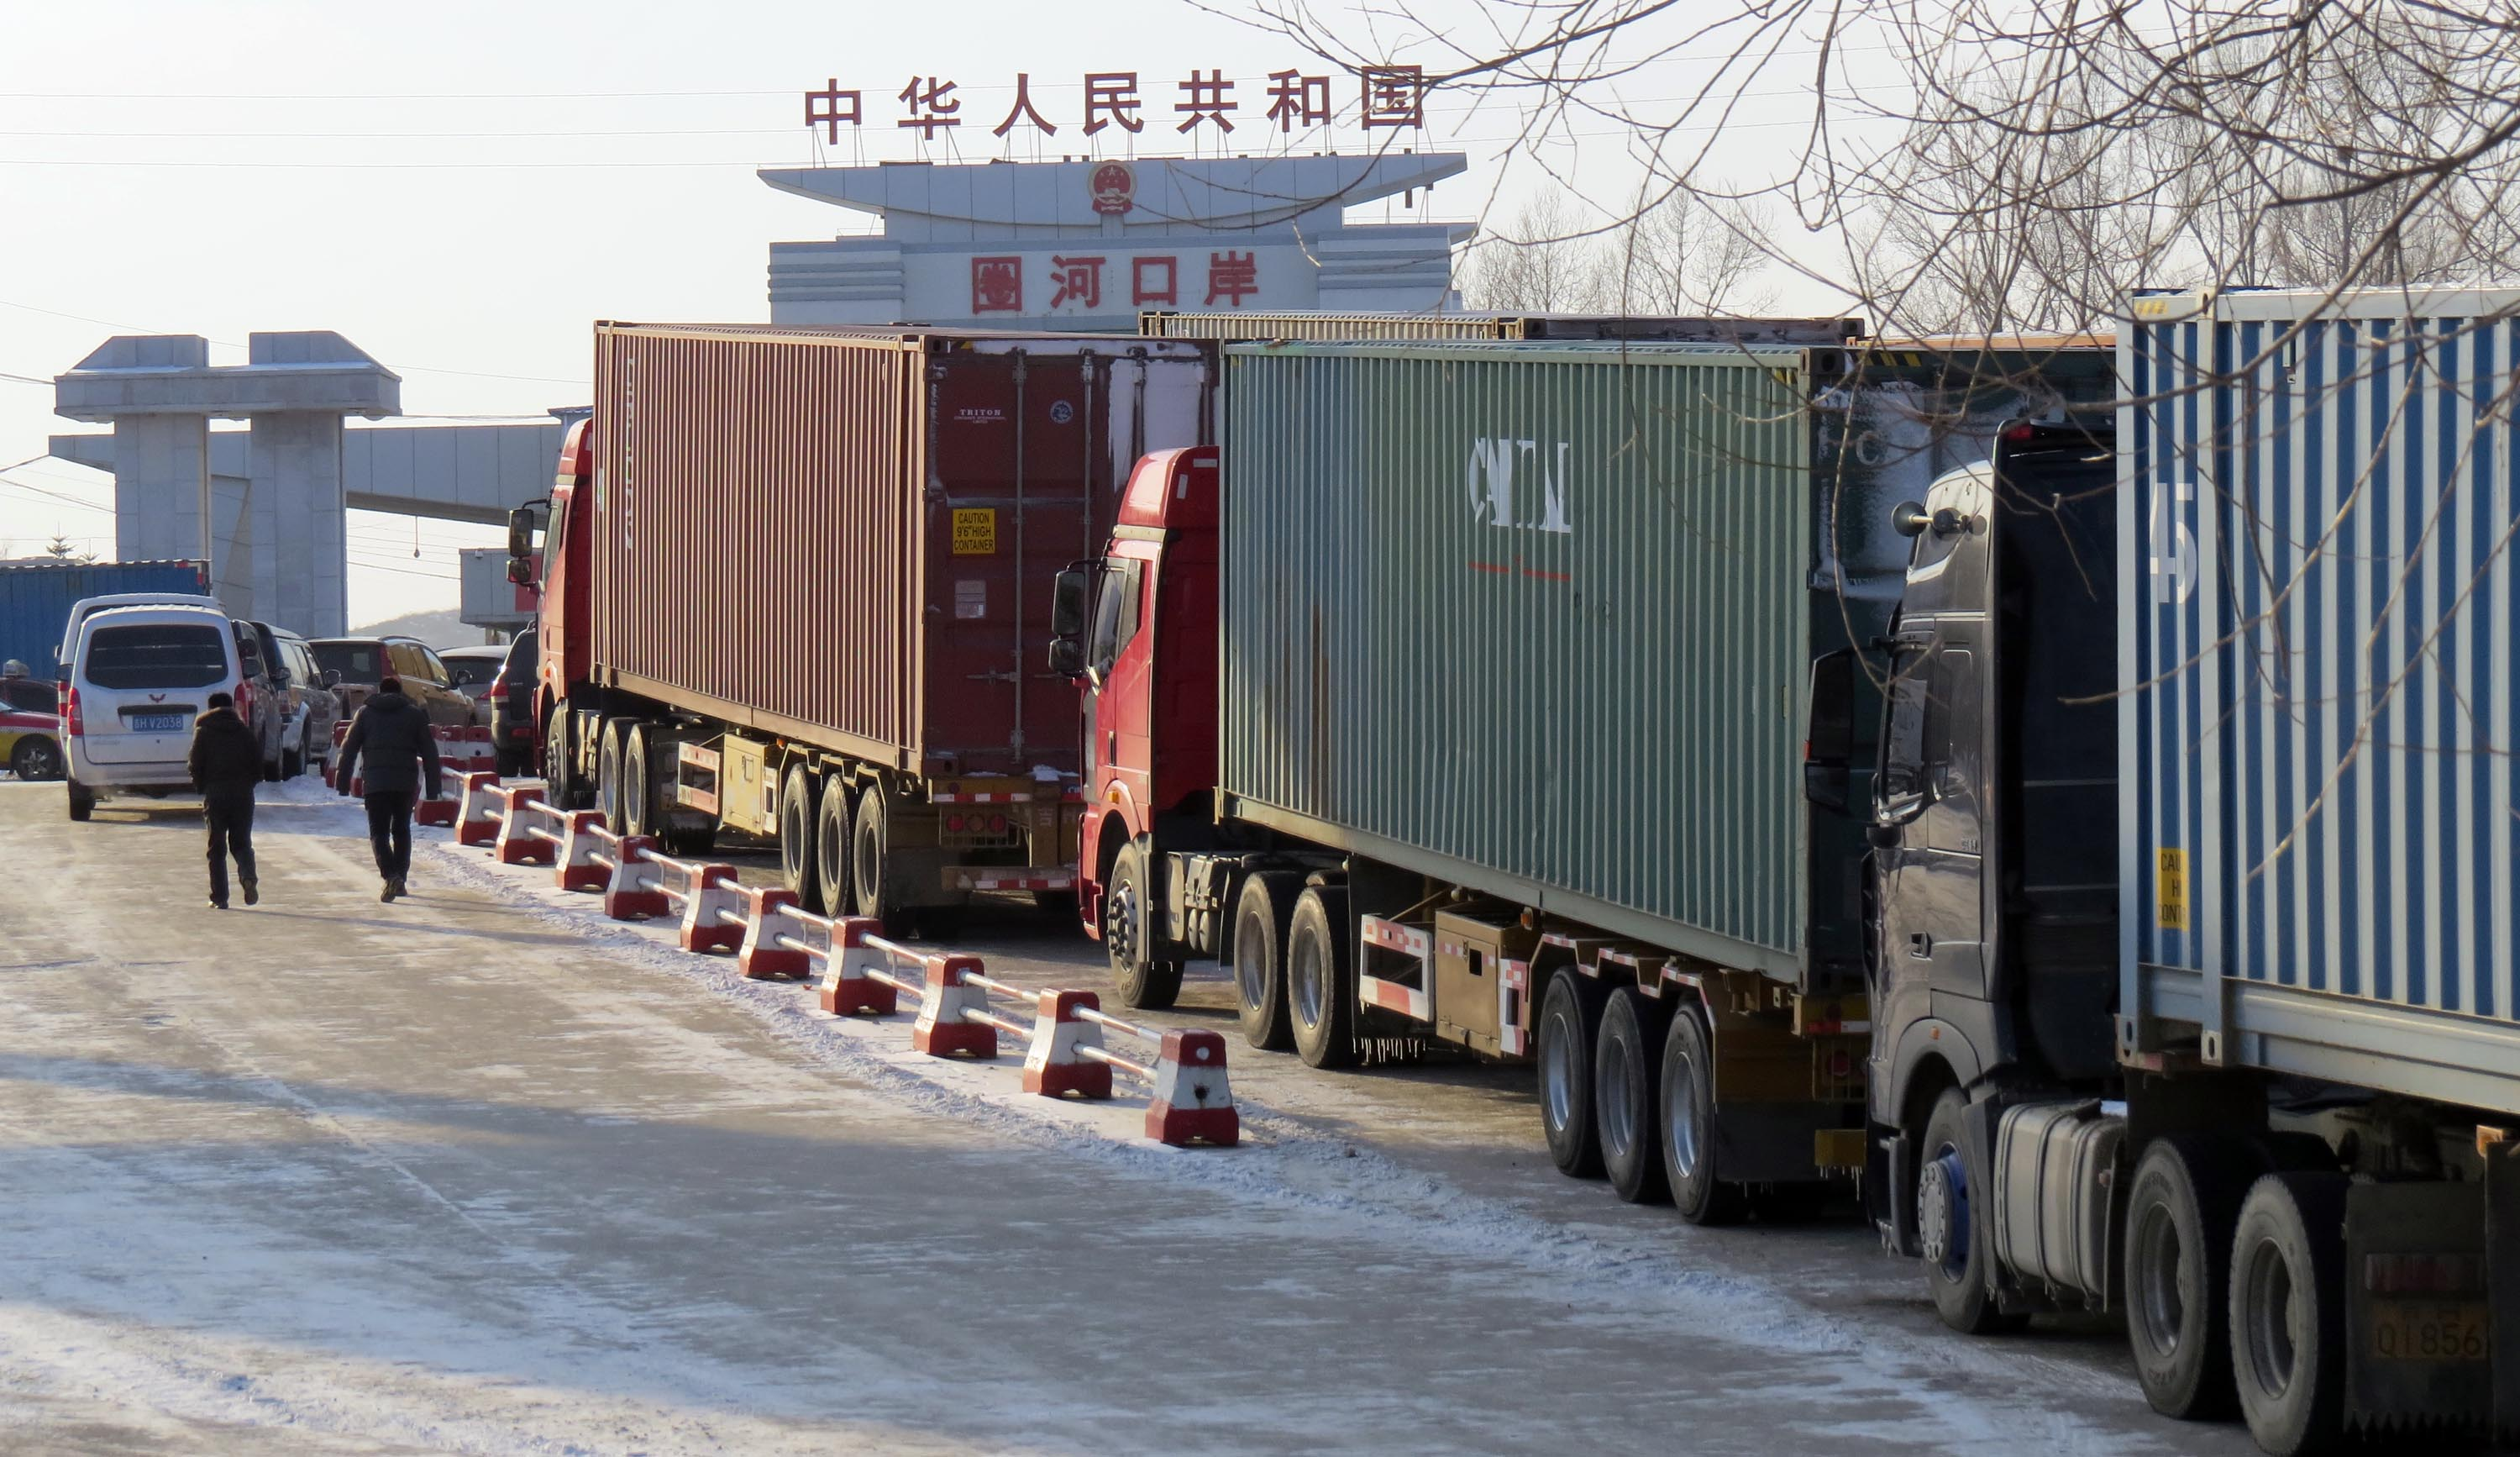 Chinese shipping container trucks are waiting to enter North Korea. (Yonhap)